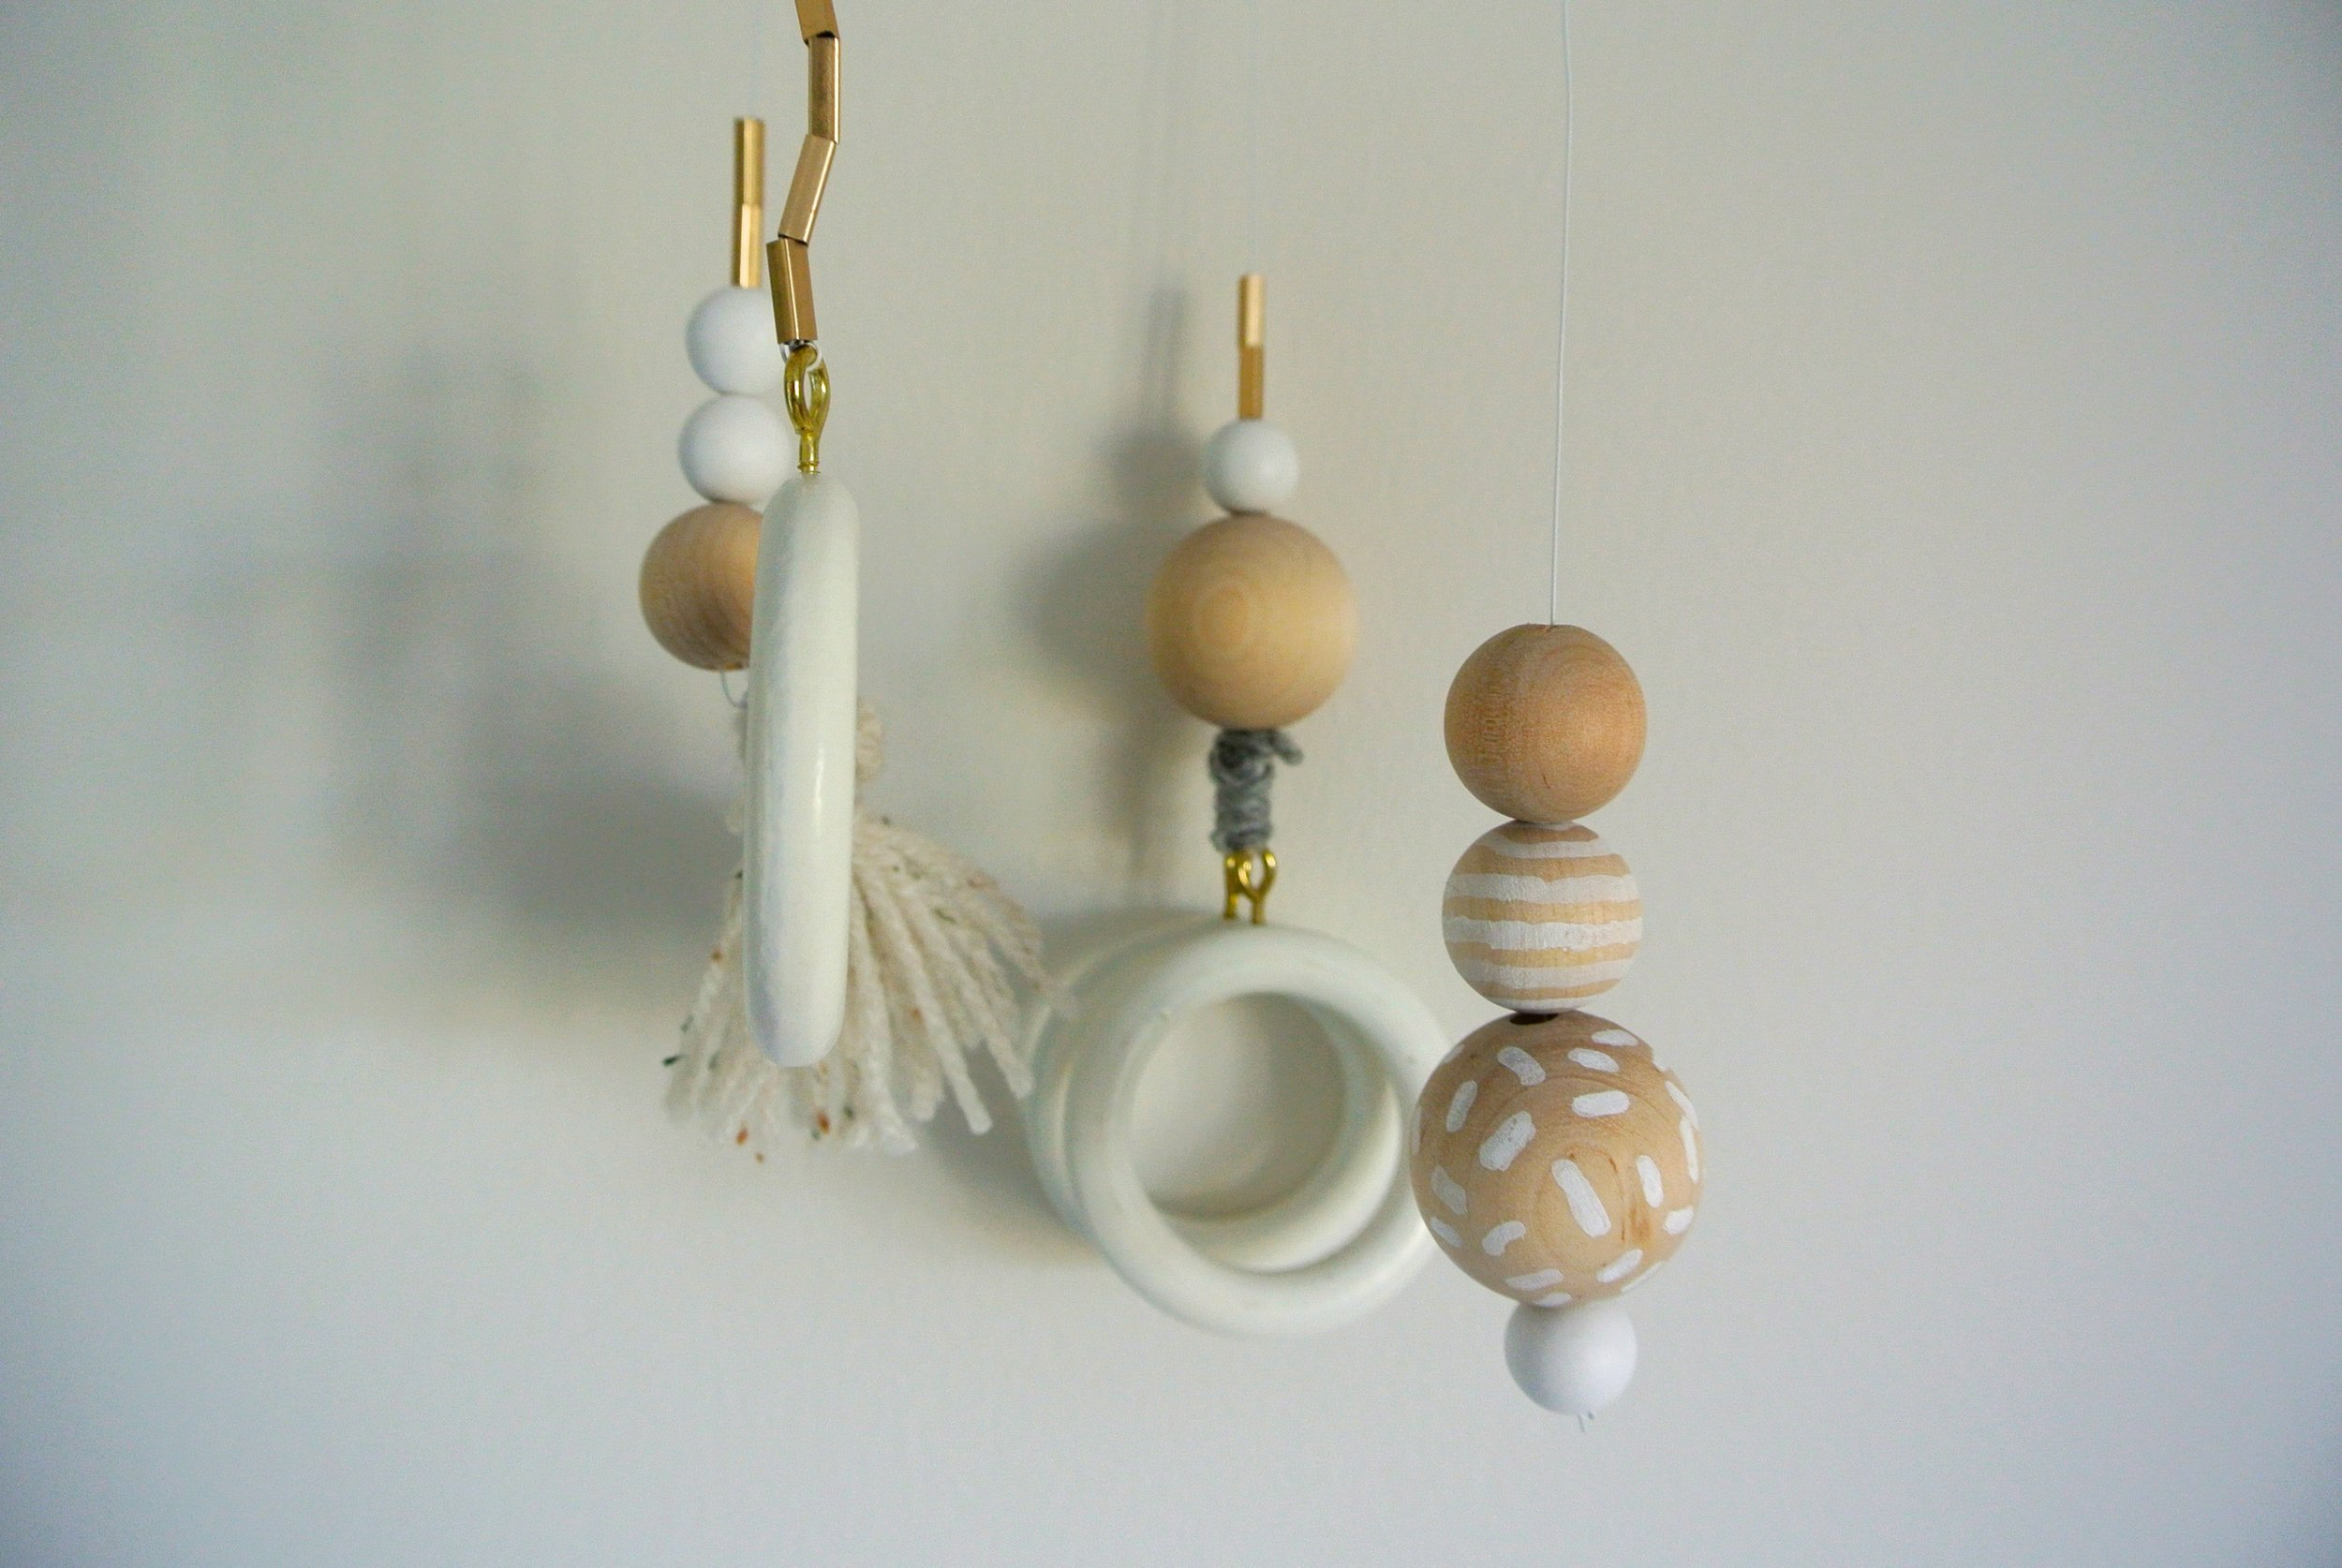 DIY Hanging Mobile